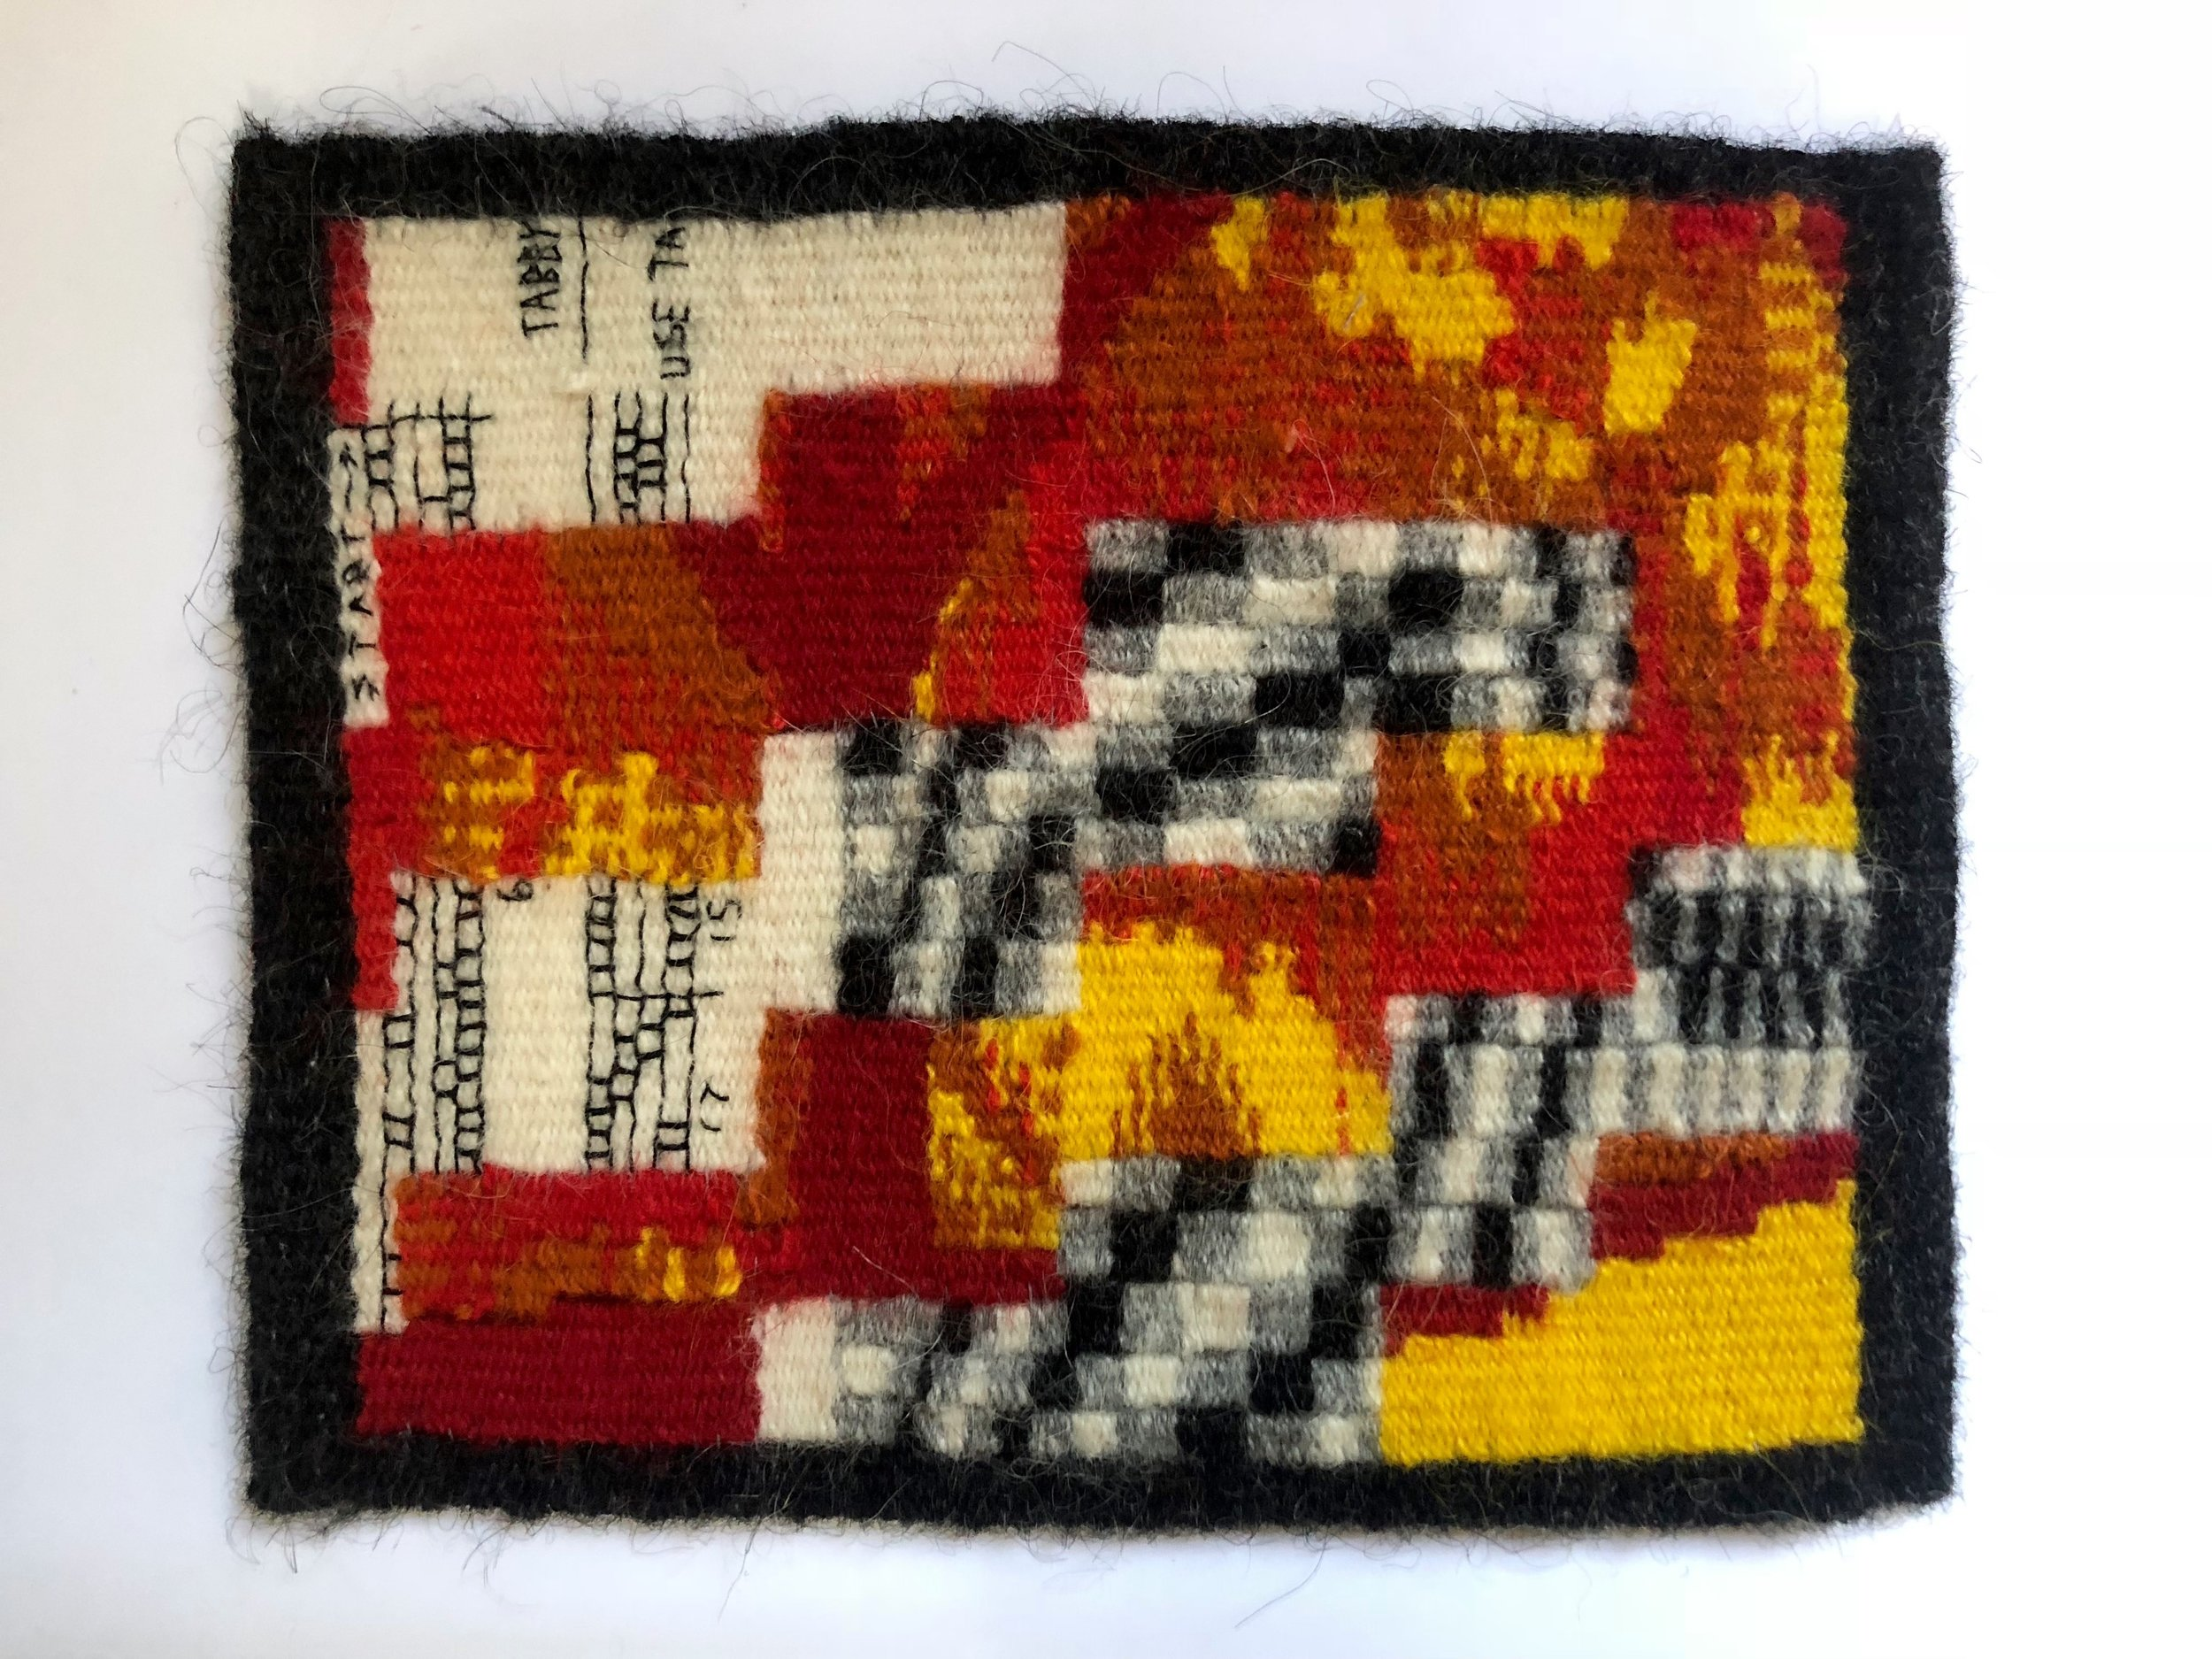 """Blooming Leaf, 2018. Linen, wool, and cotton. 6"""" x 7 1/4"""". Featured in  Small Tapestry International 6: Beyond the Edge ."""